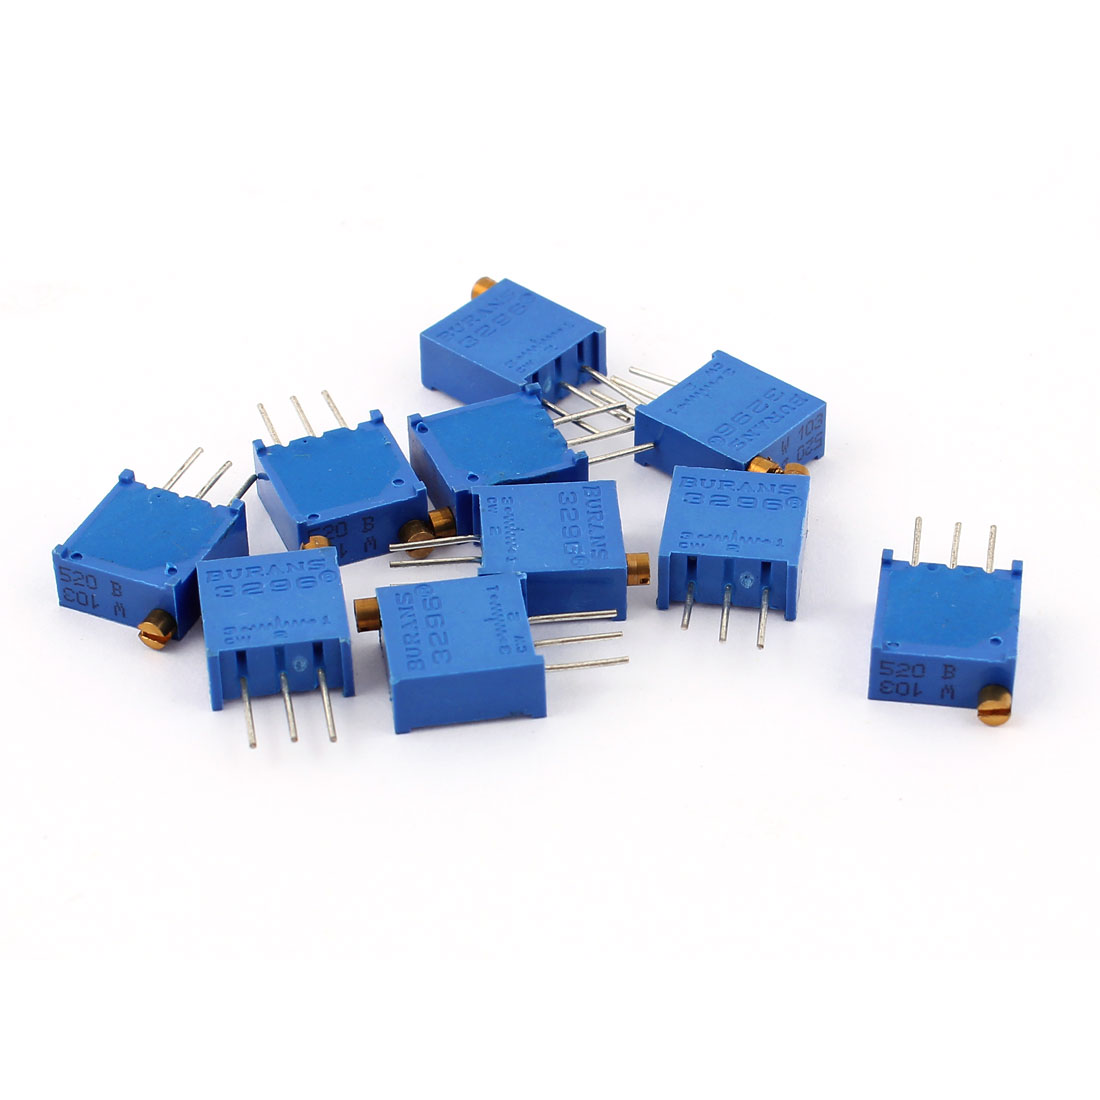 10Pcs 3296W-103 10K Ohm Trimmer Trim Pot Potentiometer Variable Resistors